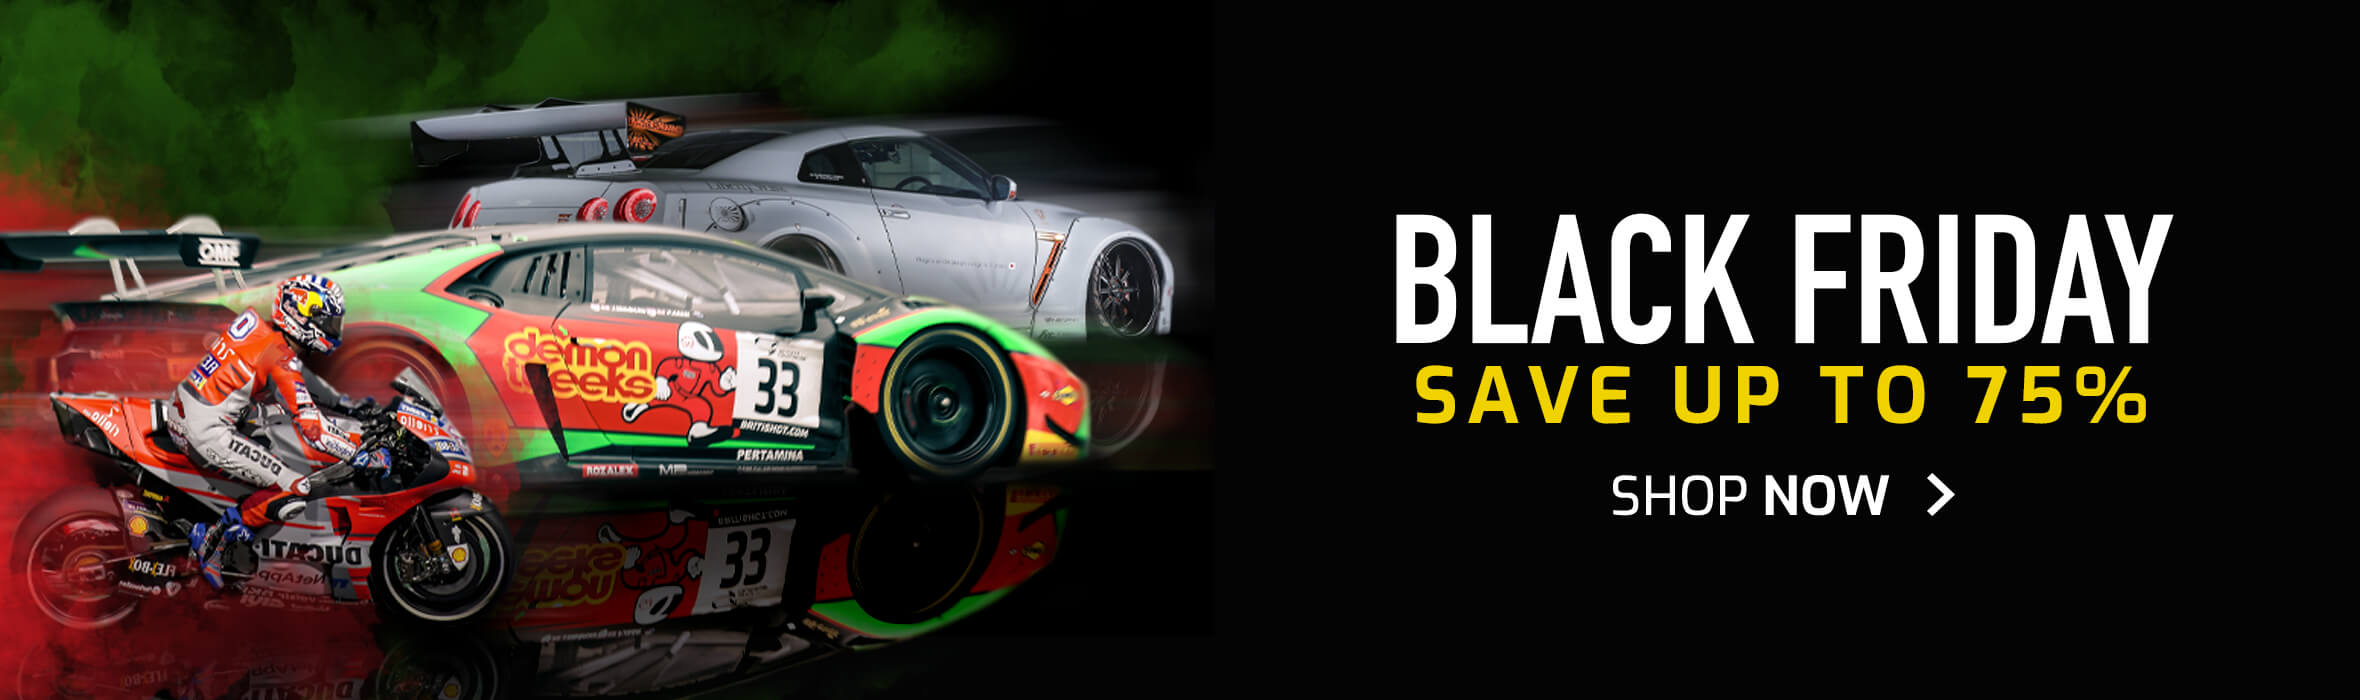 Save up to 75 with Black Friday